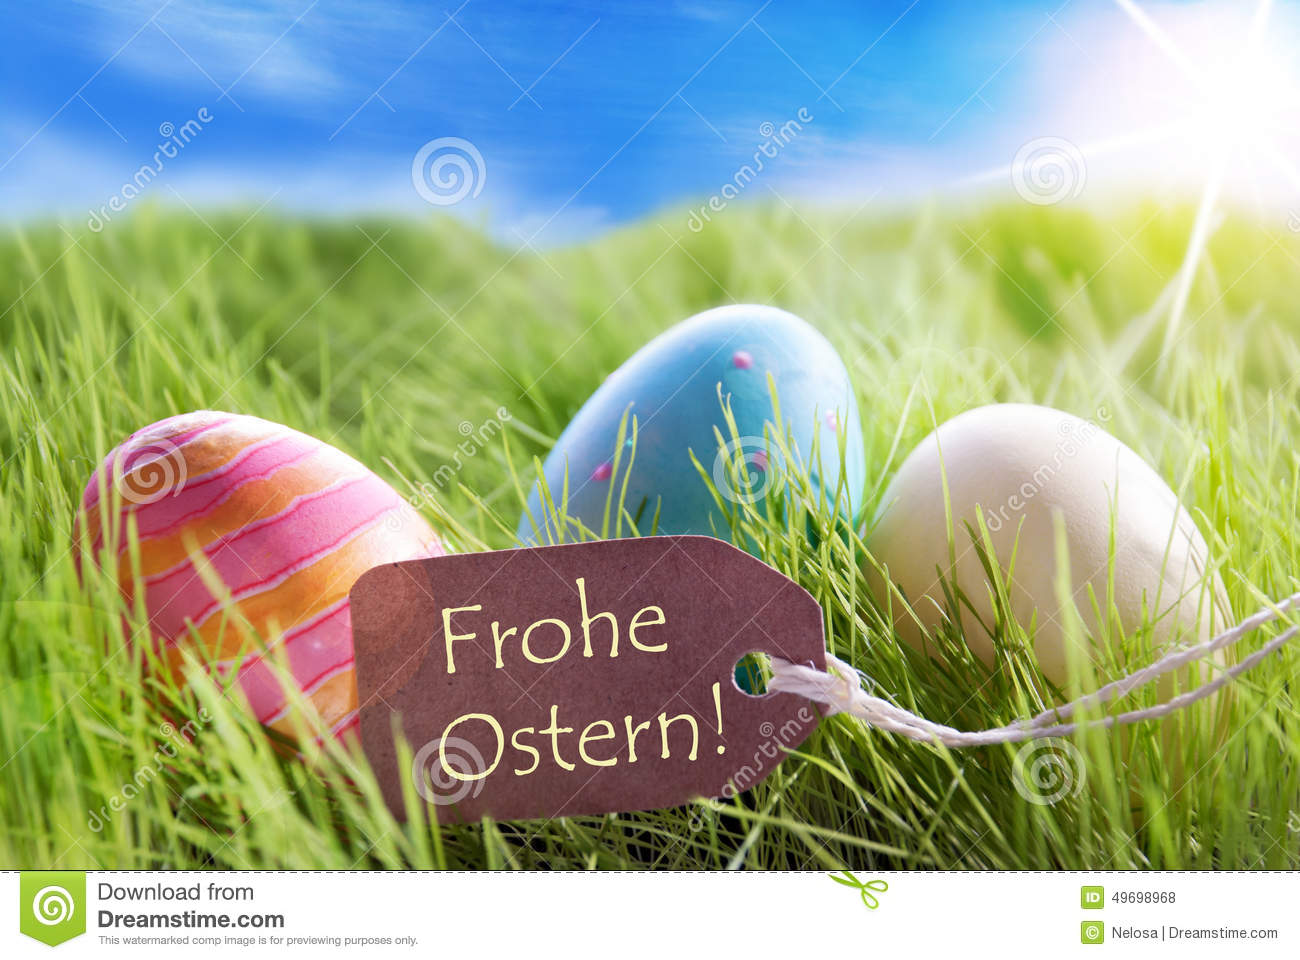 Image result for Easter Frohe Ostern